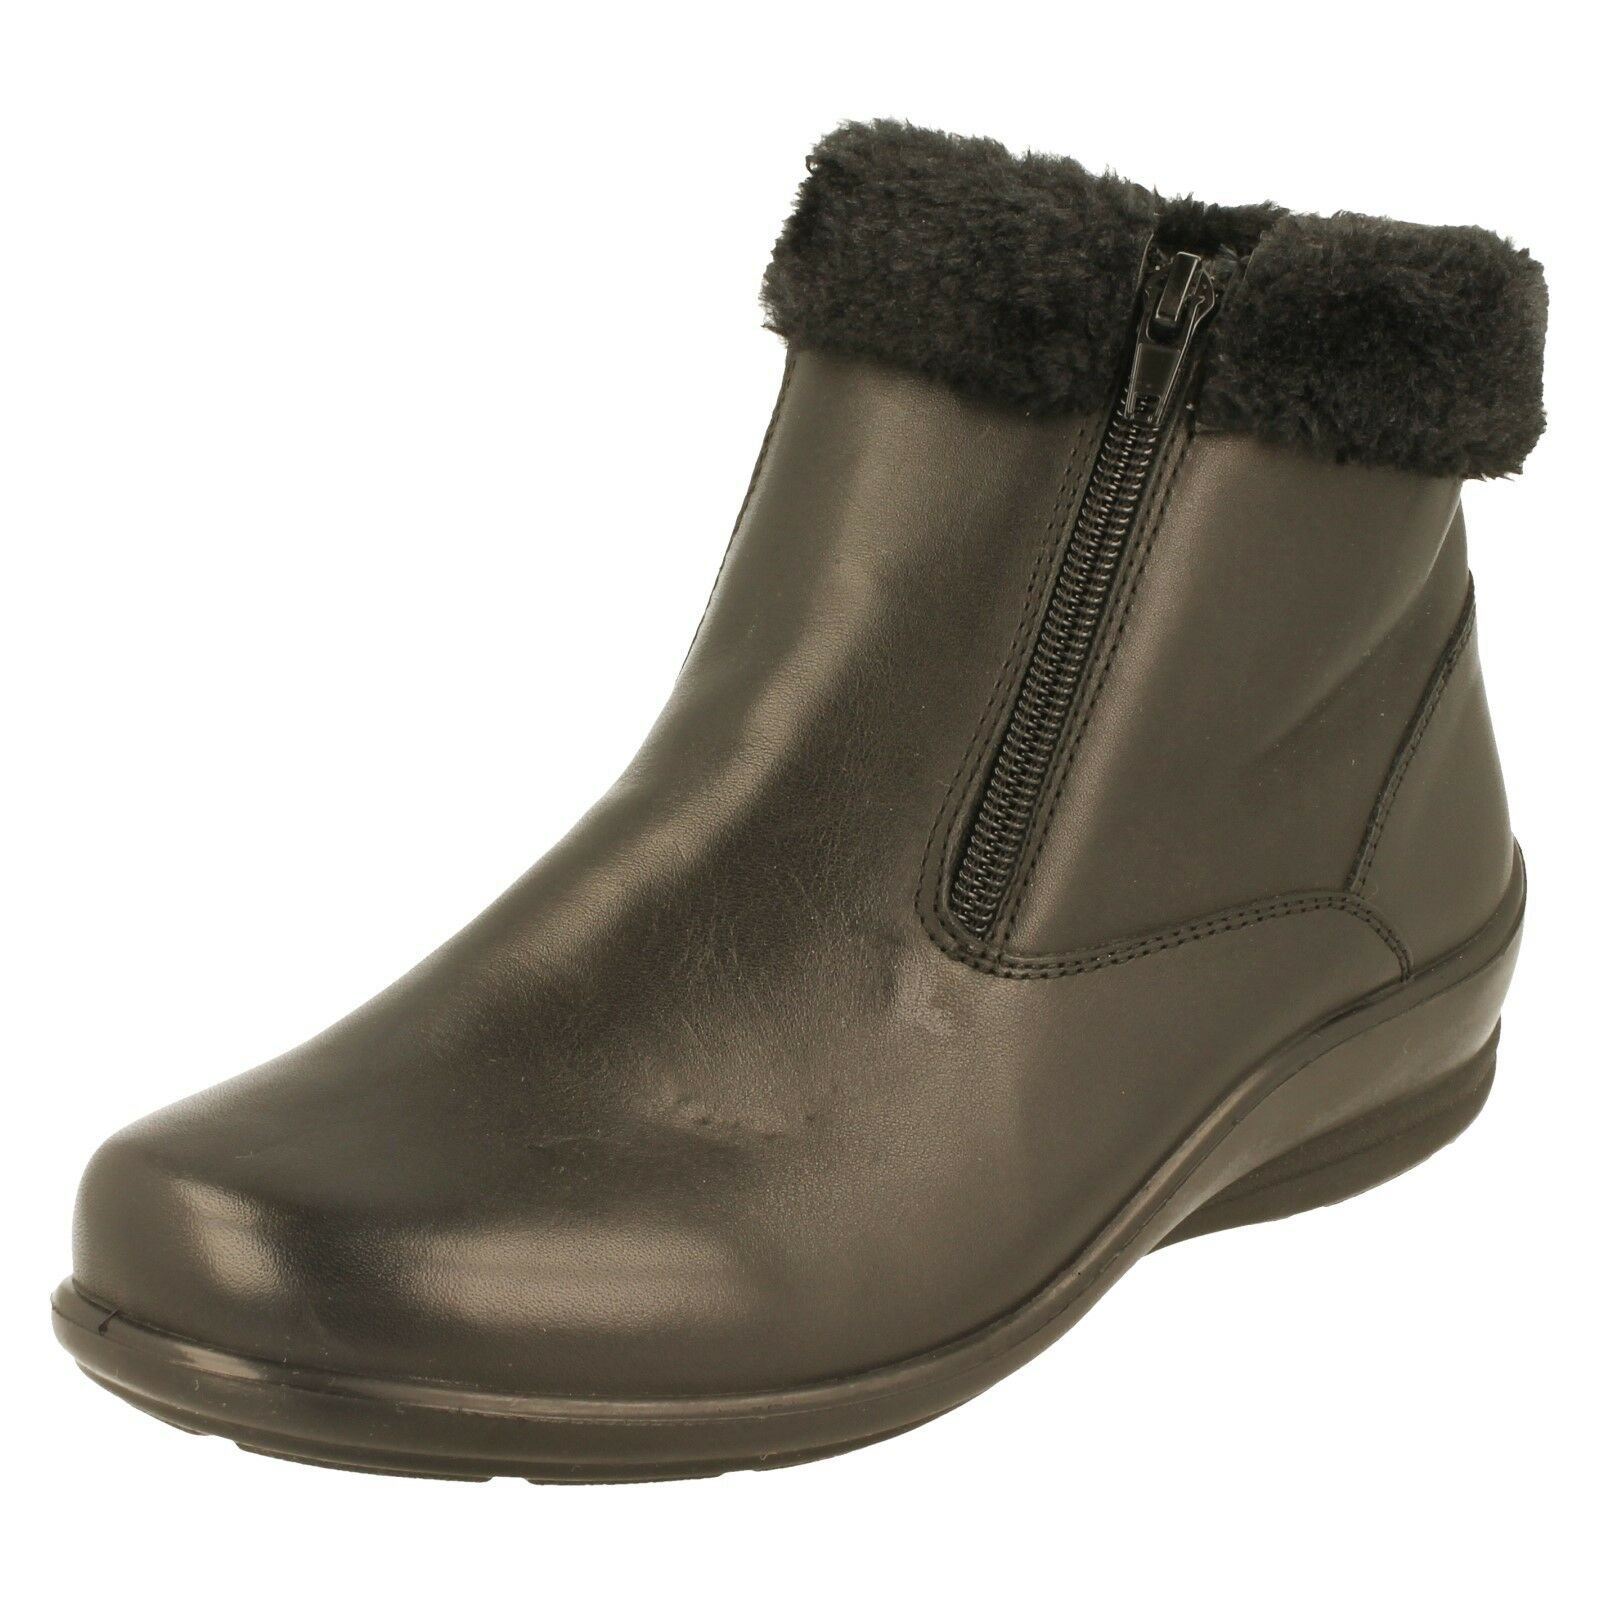 Ladies Padders E/EE Ankle Boots - Shona